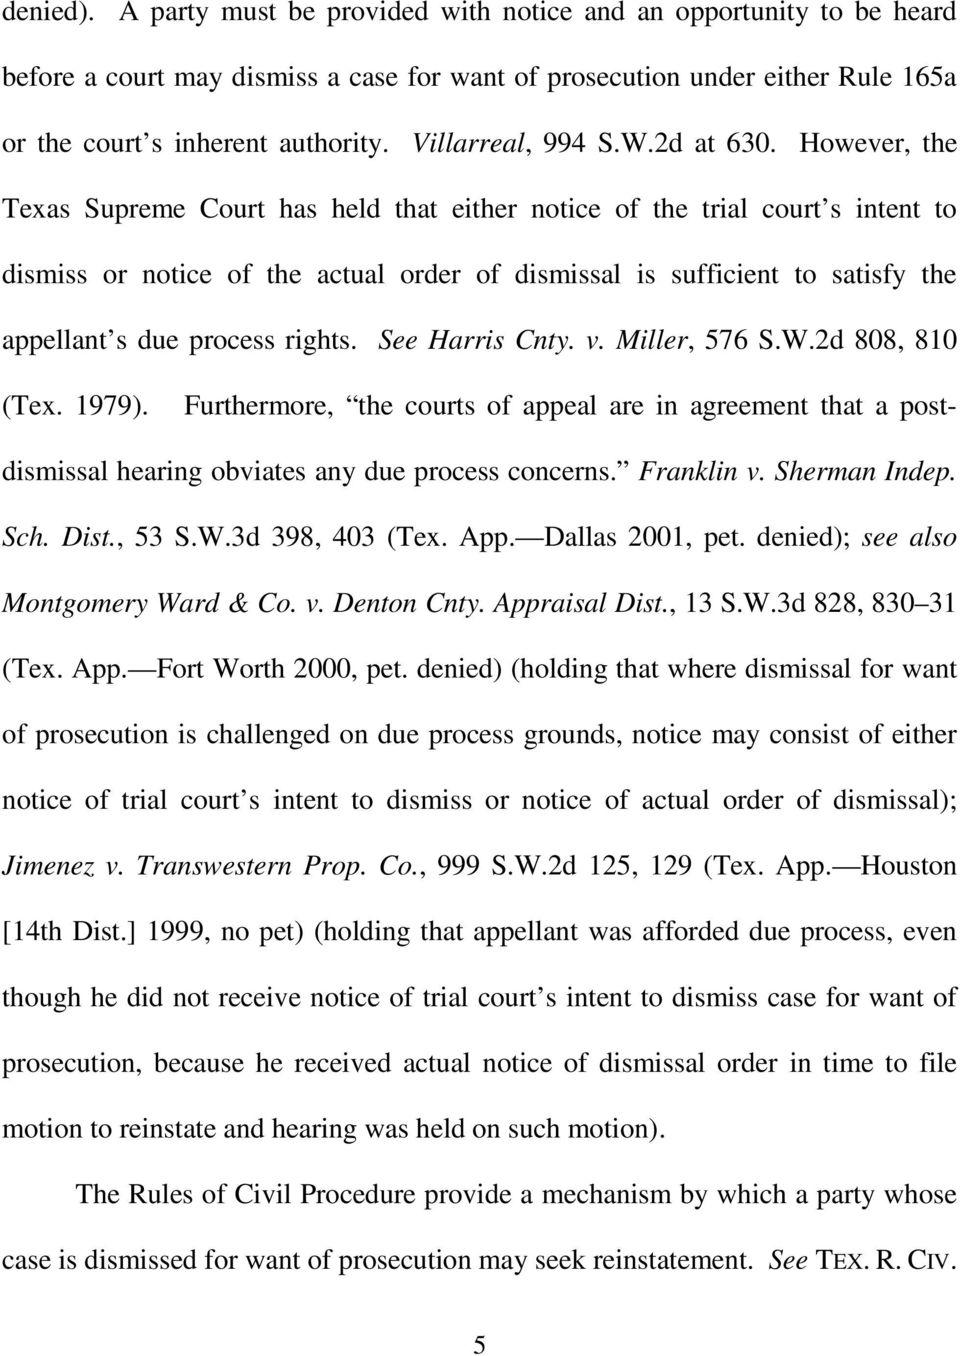 However, the Texas Supreme Court has held that either notice of the trial court s intent to dismiss or notice of the actual order of dismissal is sufficient to satisfy the appellant s due process